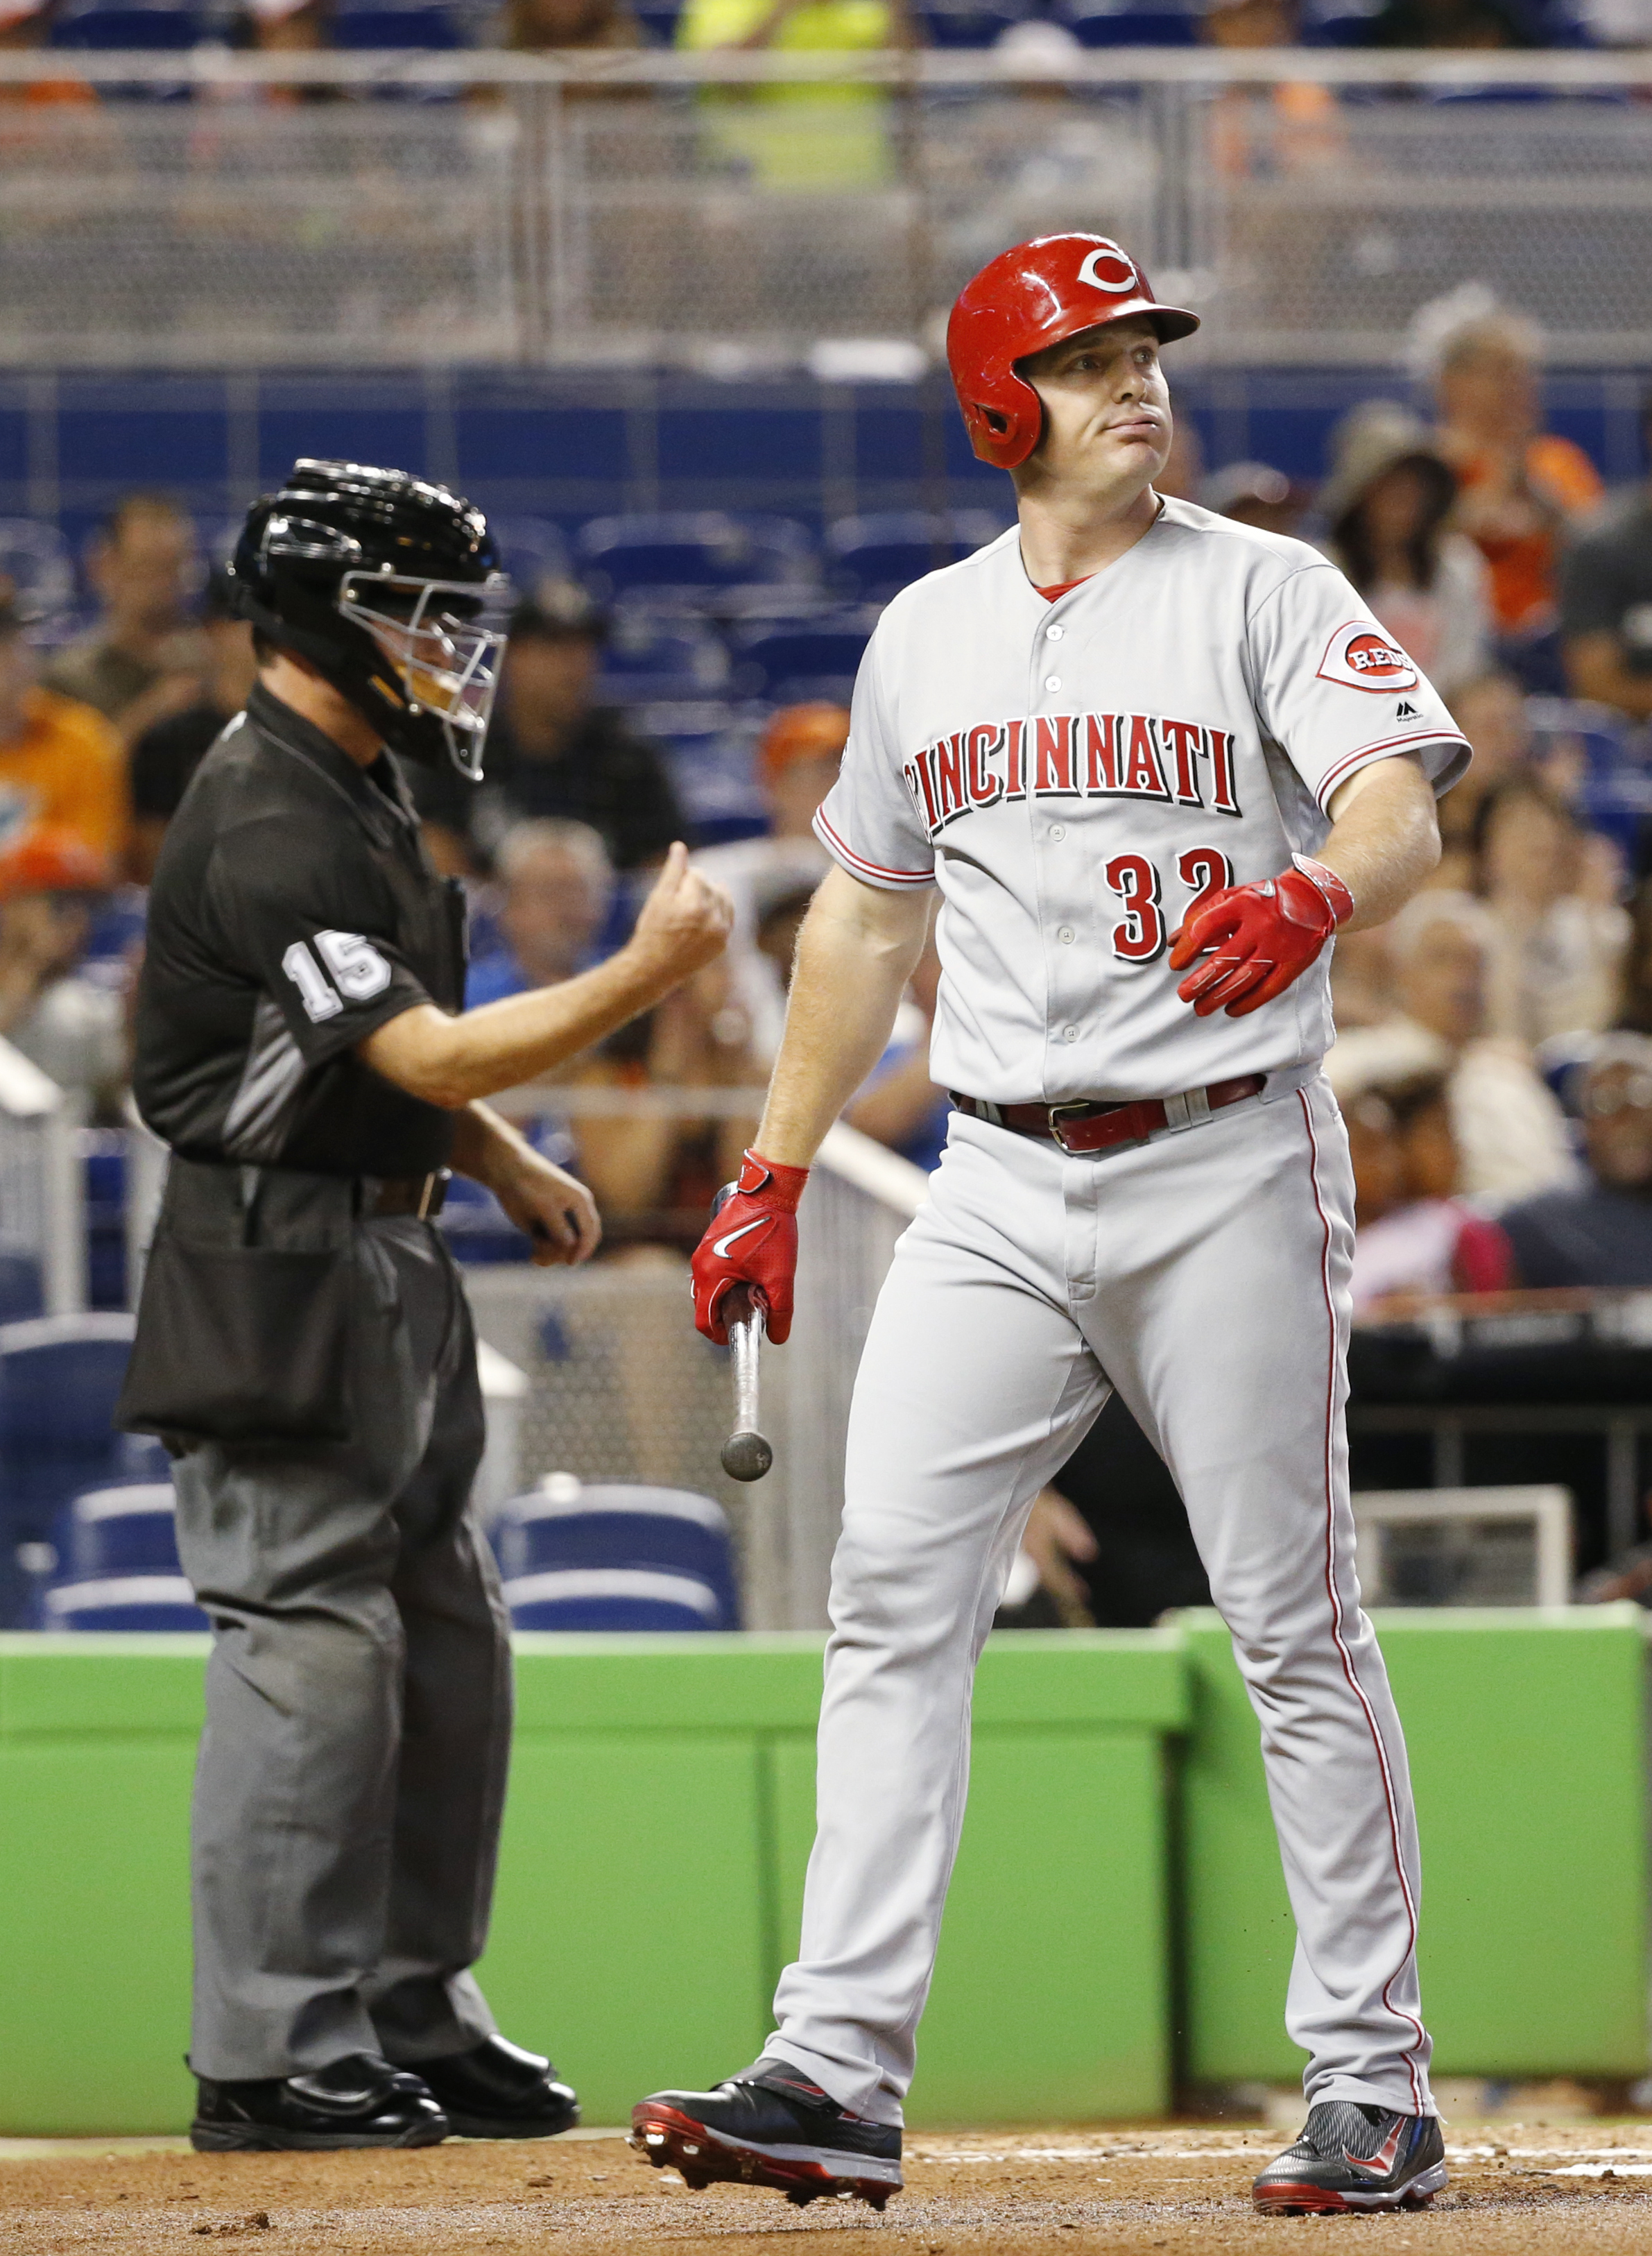 Cincinnati Reds' Jay Bruce  reacts after striking out during the first inning of a baseball game against the Miami Marlins, Saturday, July 9, 2016, in Miami. (AP Photo/Wilfredo Lee)